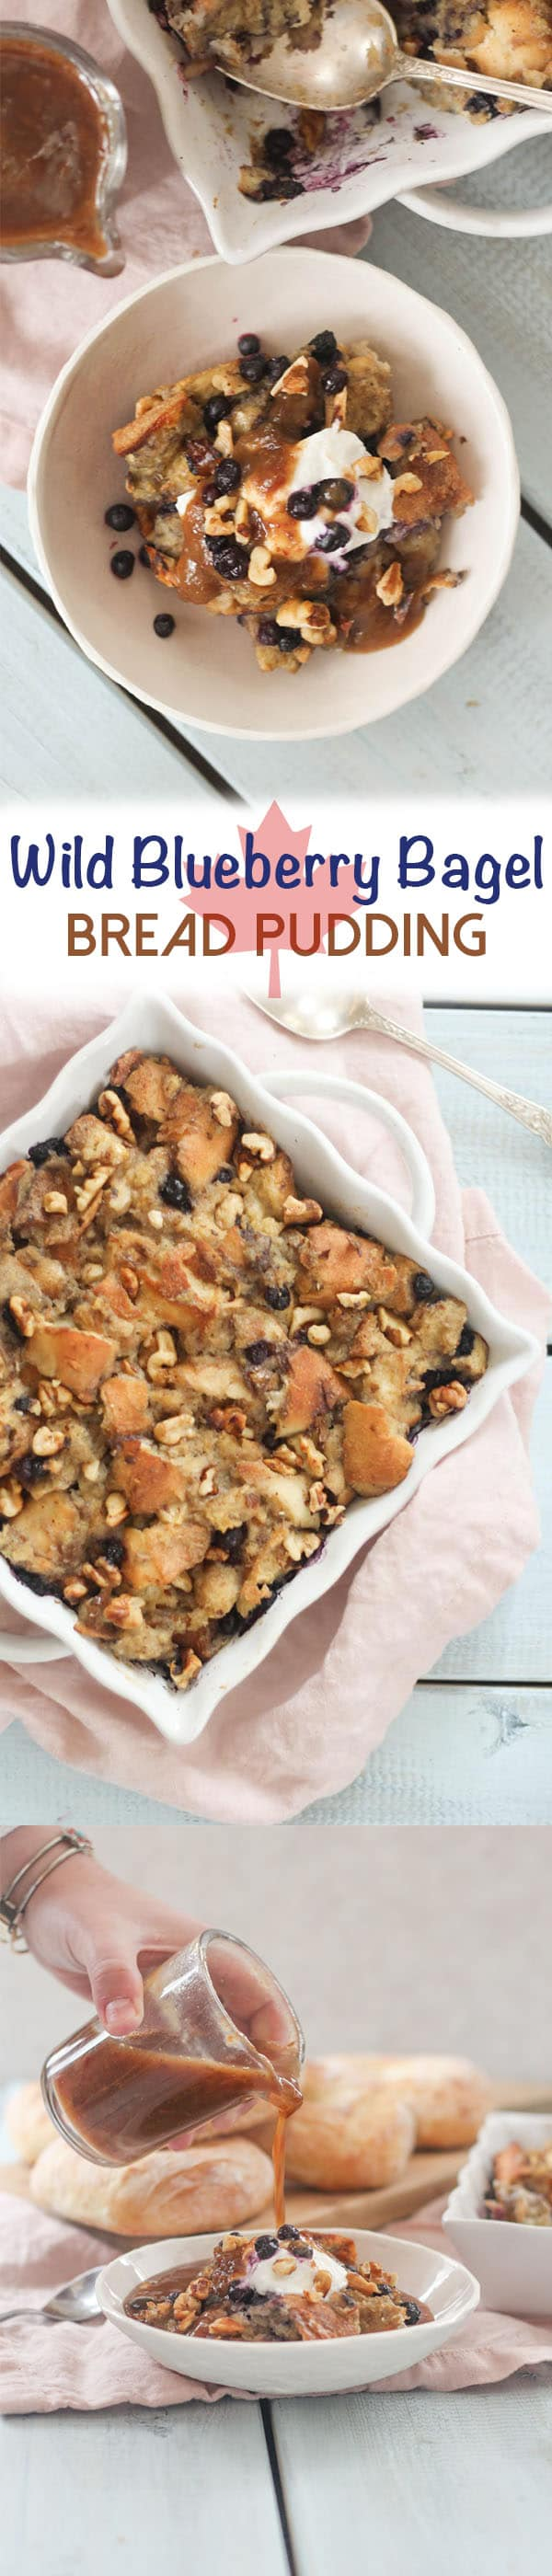 This Wild Blueberry Bagel Bread Pudding with Whiskey Date Caramel is a perfect dairy free dessert for Canada Day featuring local Canadian ingredients.